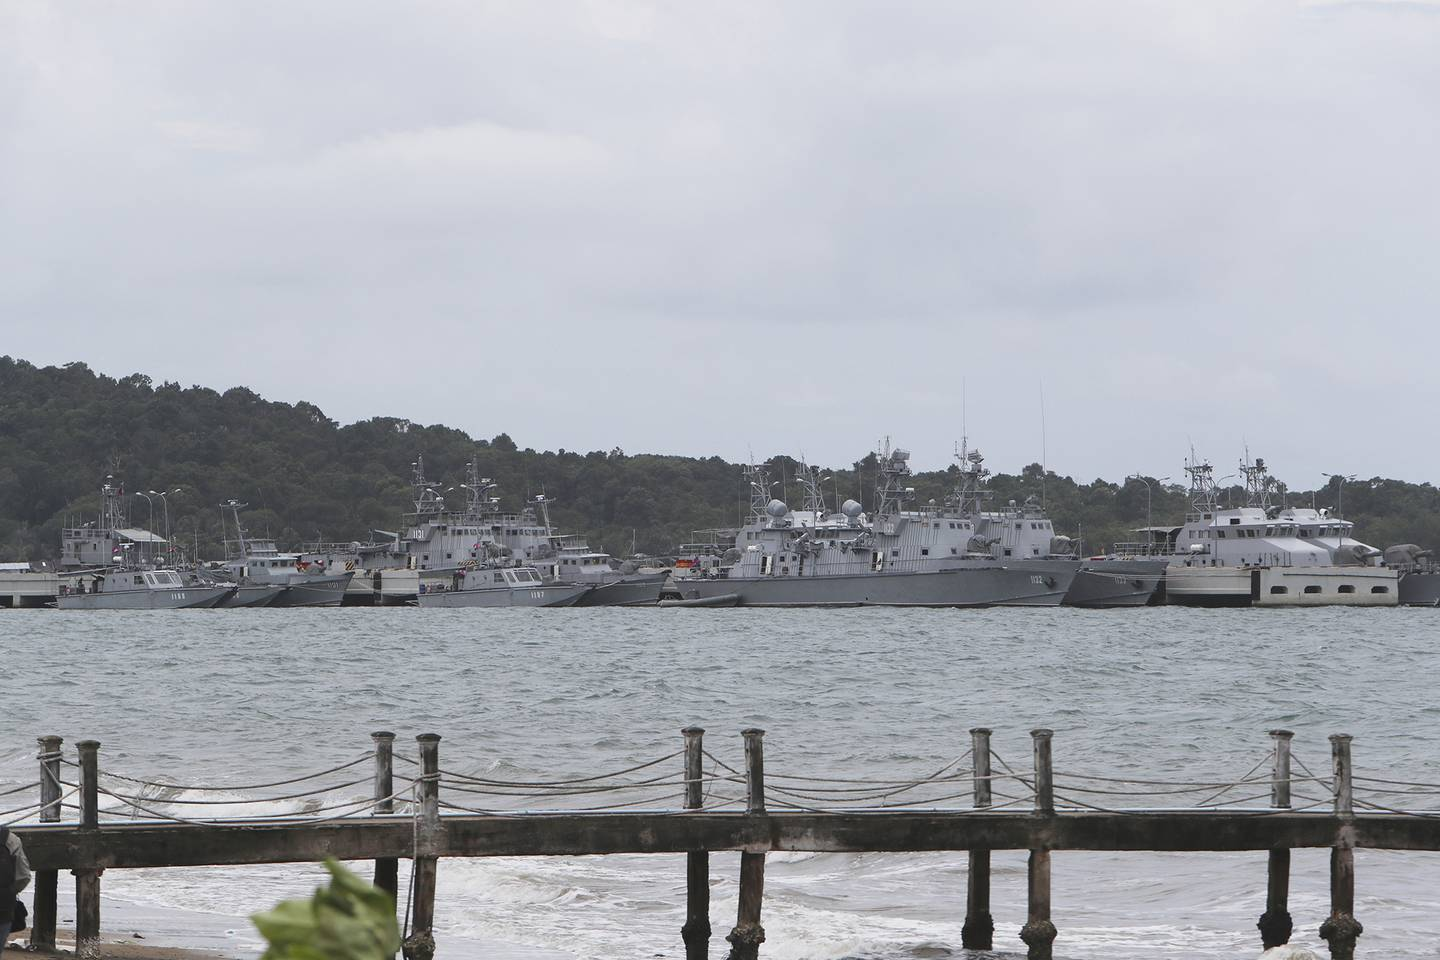 Cambodian warships are docked at Ream Naval Base in Sihanoukville, Cambodia, on July 26, 2019.